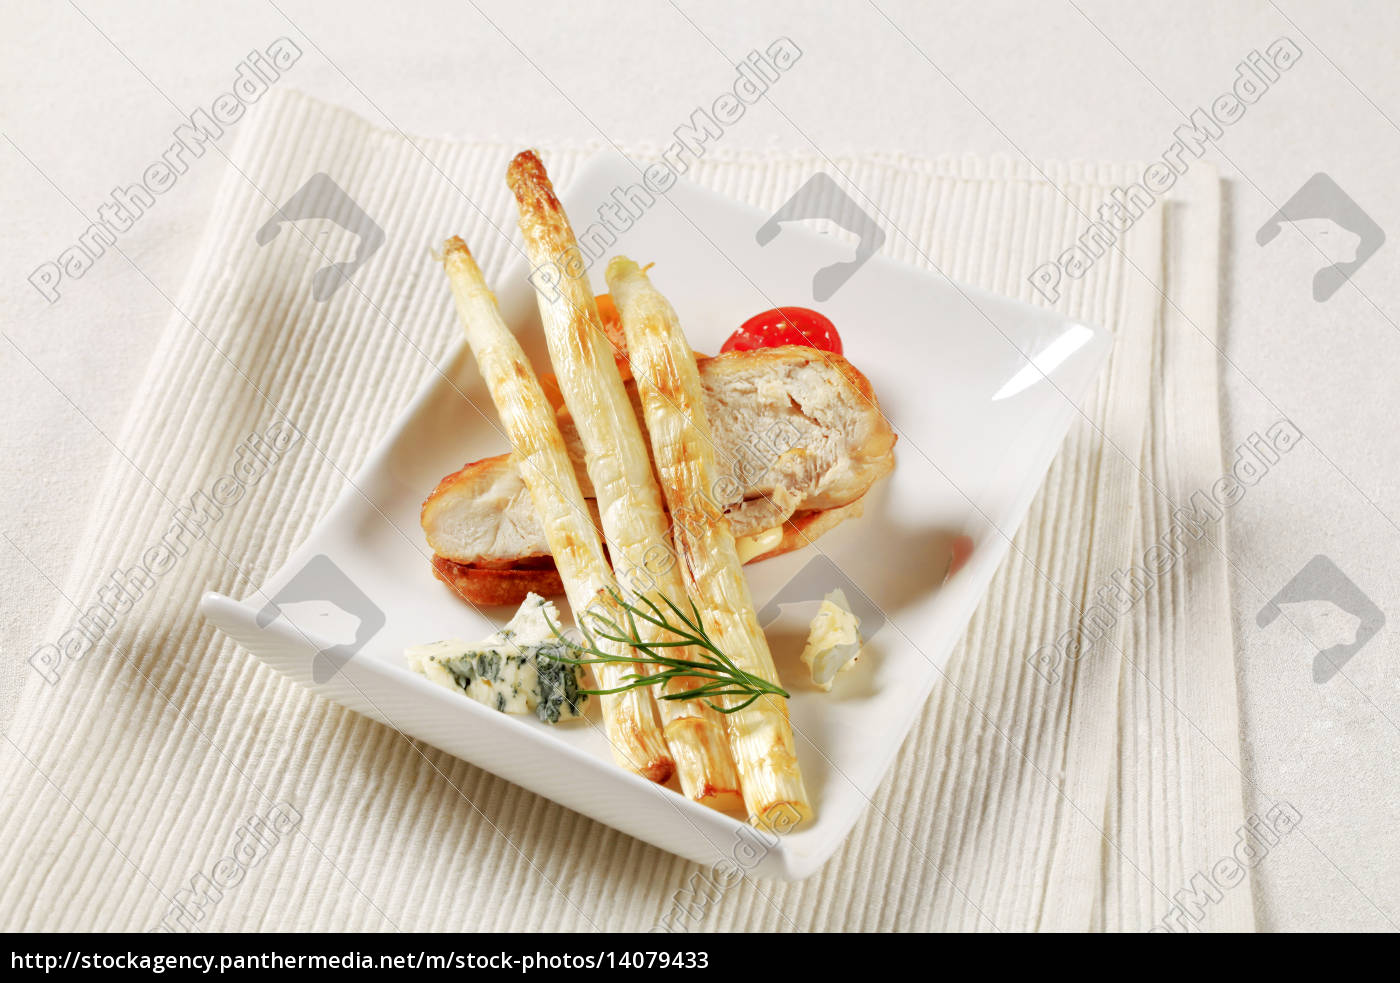 white, asparagus, and, chicken, breast - 14079433